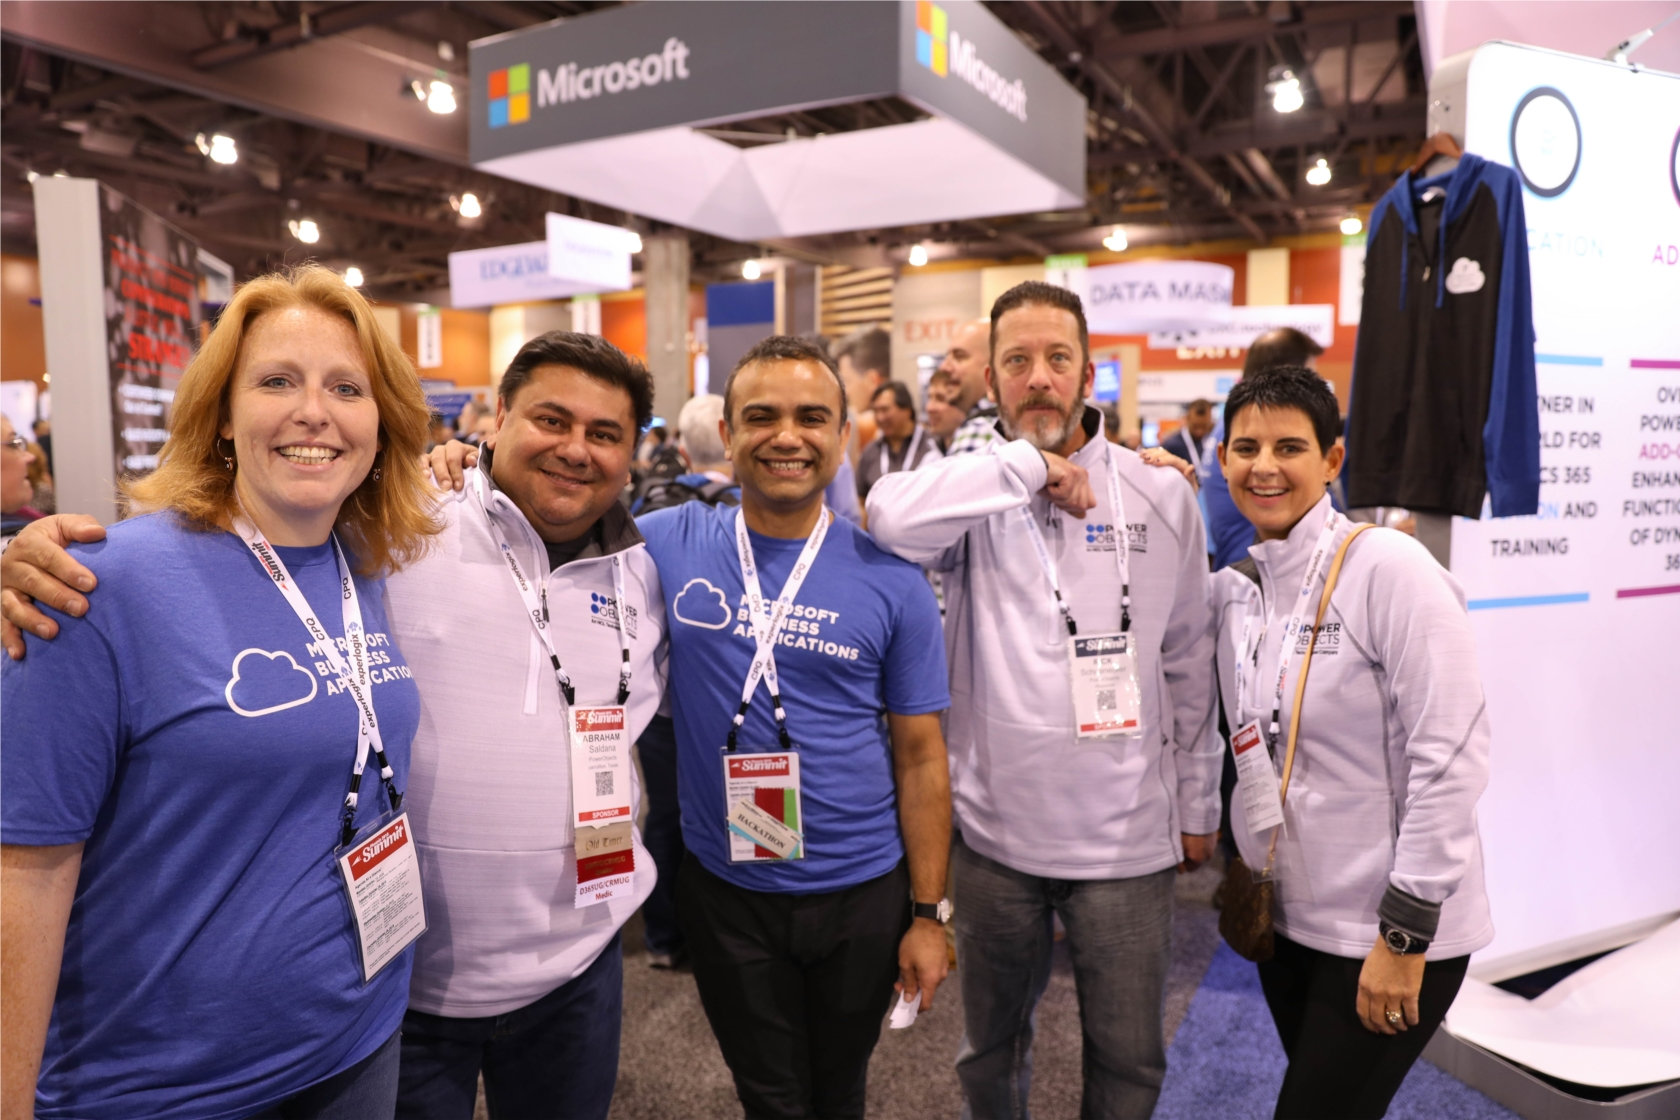 The D365UG Summit conference delegation spent a week in Phoenix learning and sharing their love of Microsoft Dynamics 365.